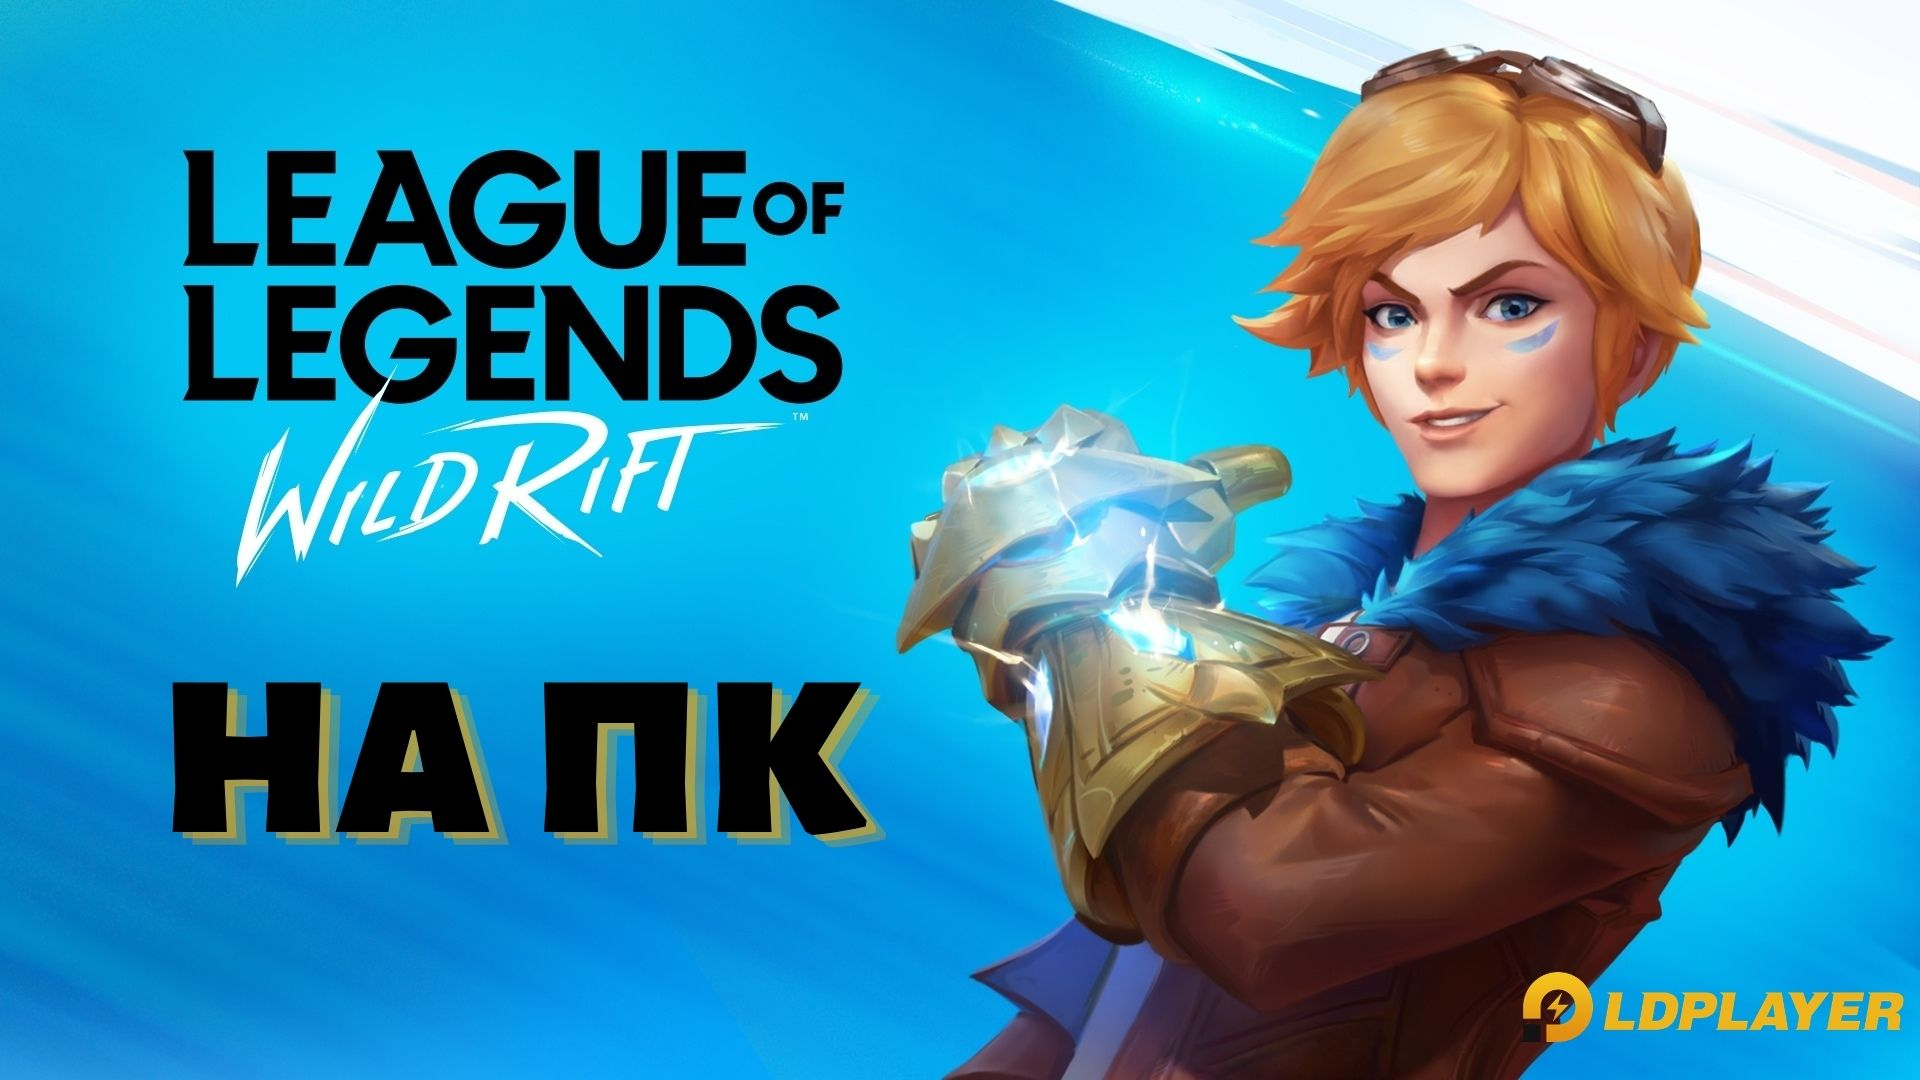 Играть в League of Legends: Wild Rift на ПК с 60 фпс